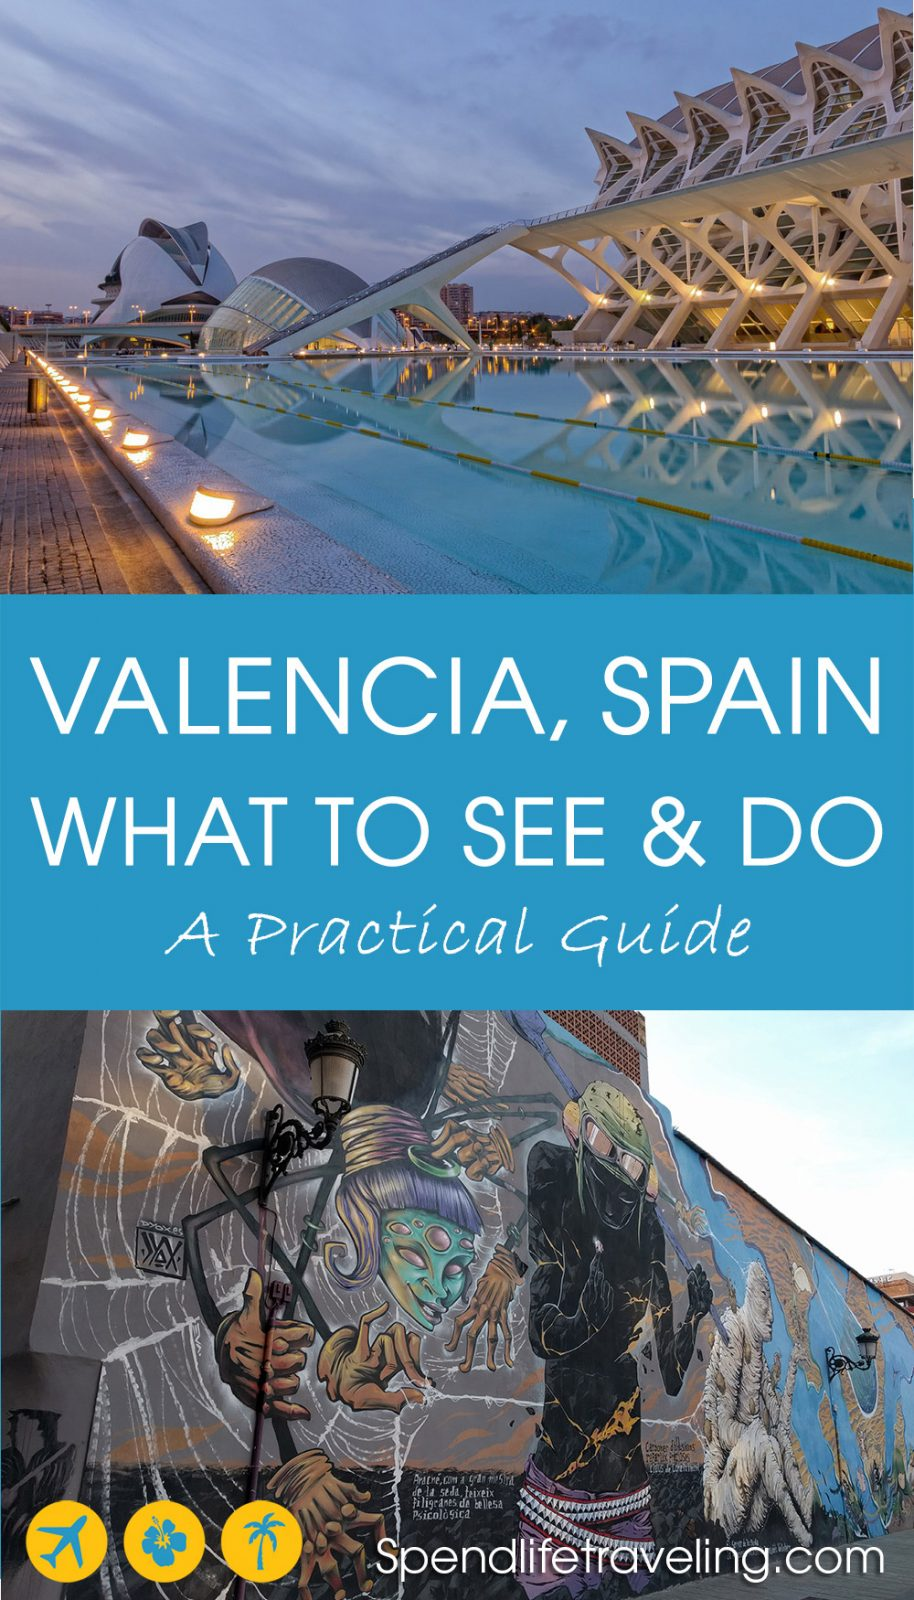 #Valencia is a beautiful Mediterranean city and an increasingly popular destination for a city break. This is a practical guide about what not to miss when traveling to Valencia, Spain. #citybreak #cityguide #visitSpain #travelSpain